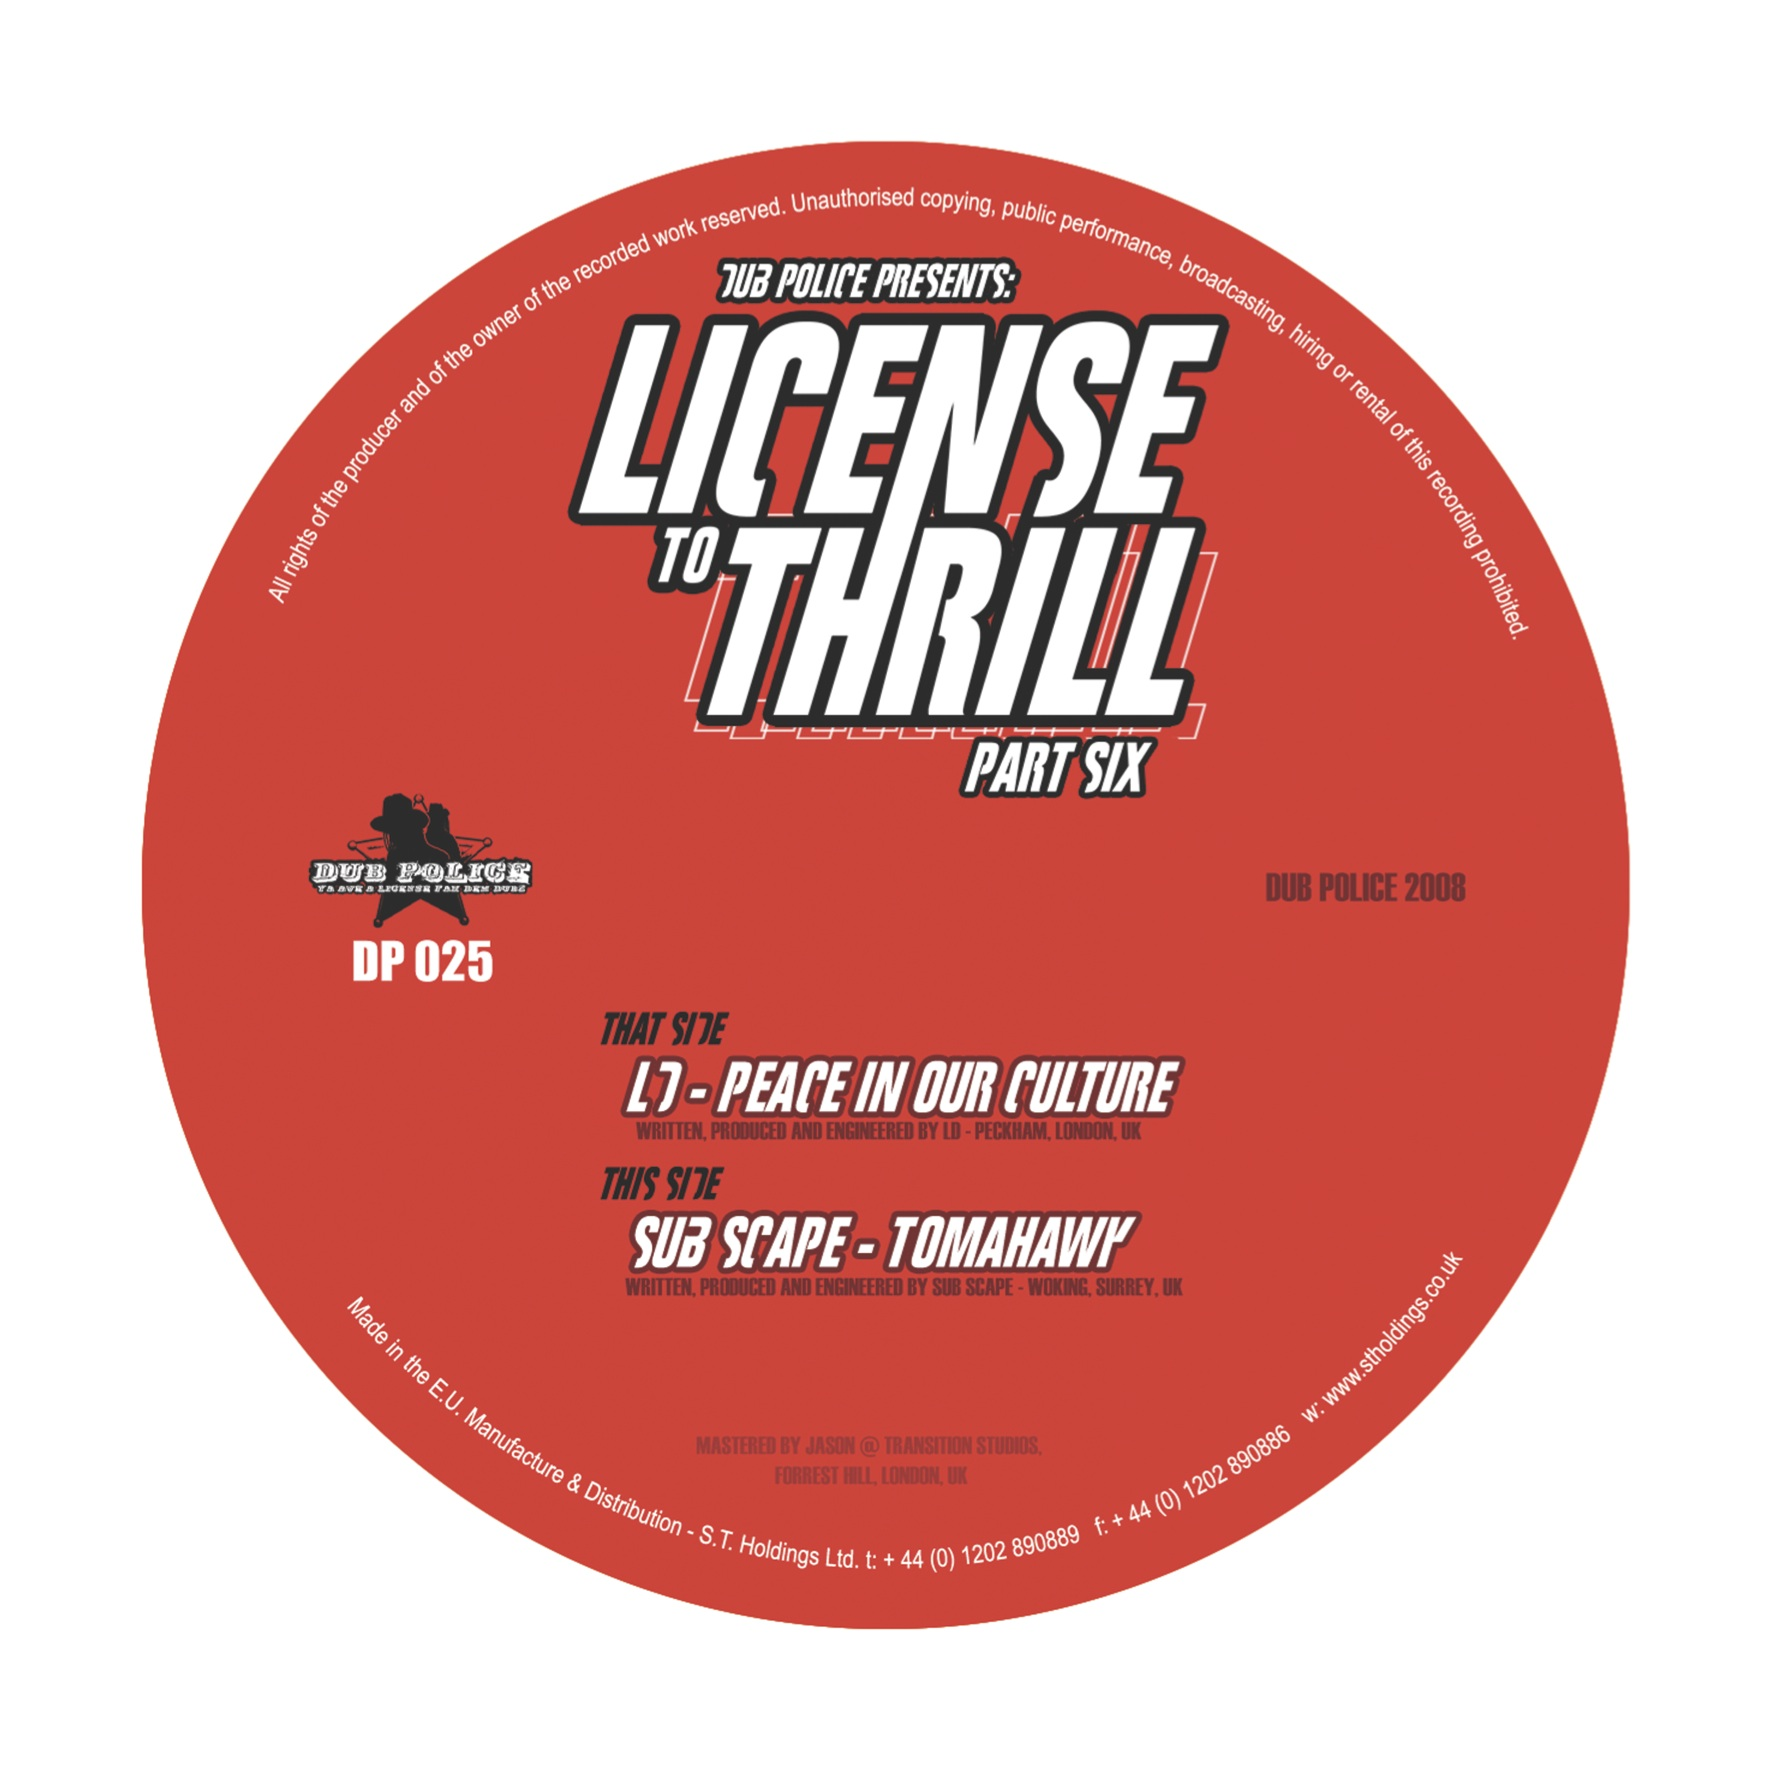 DP025: LICENSE TO THRILL PT. 6